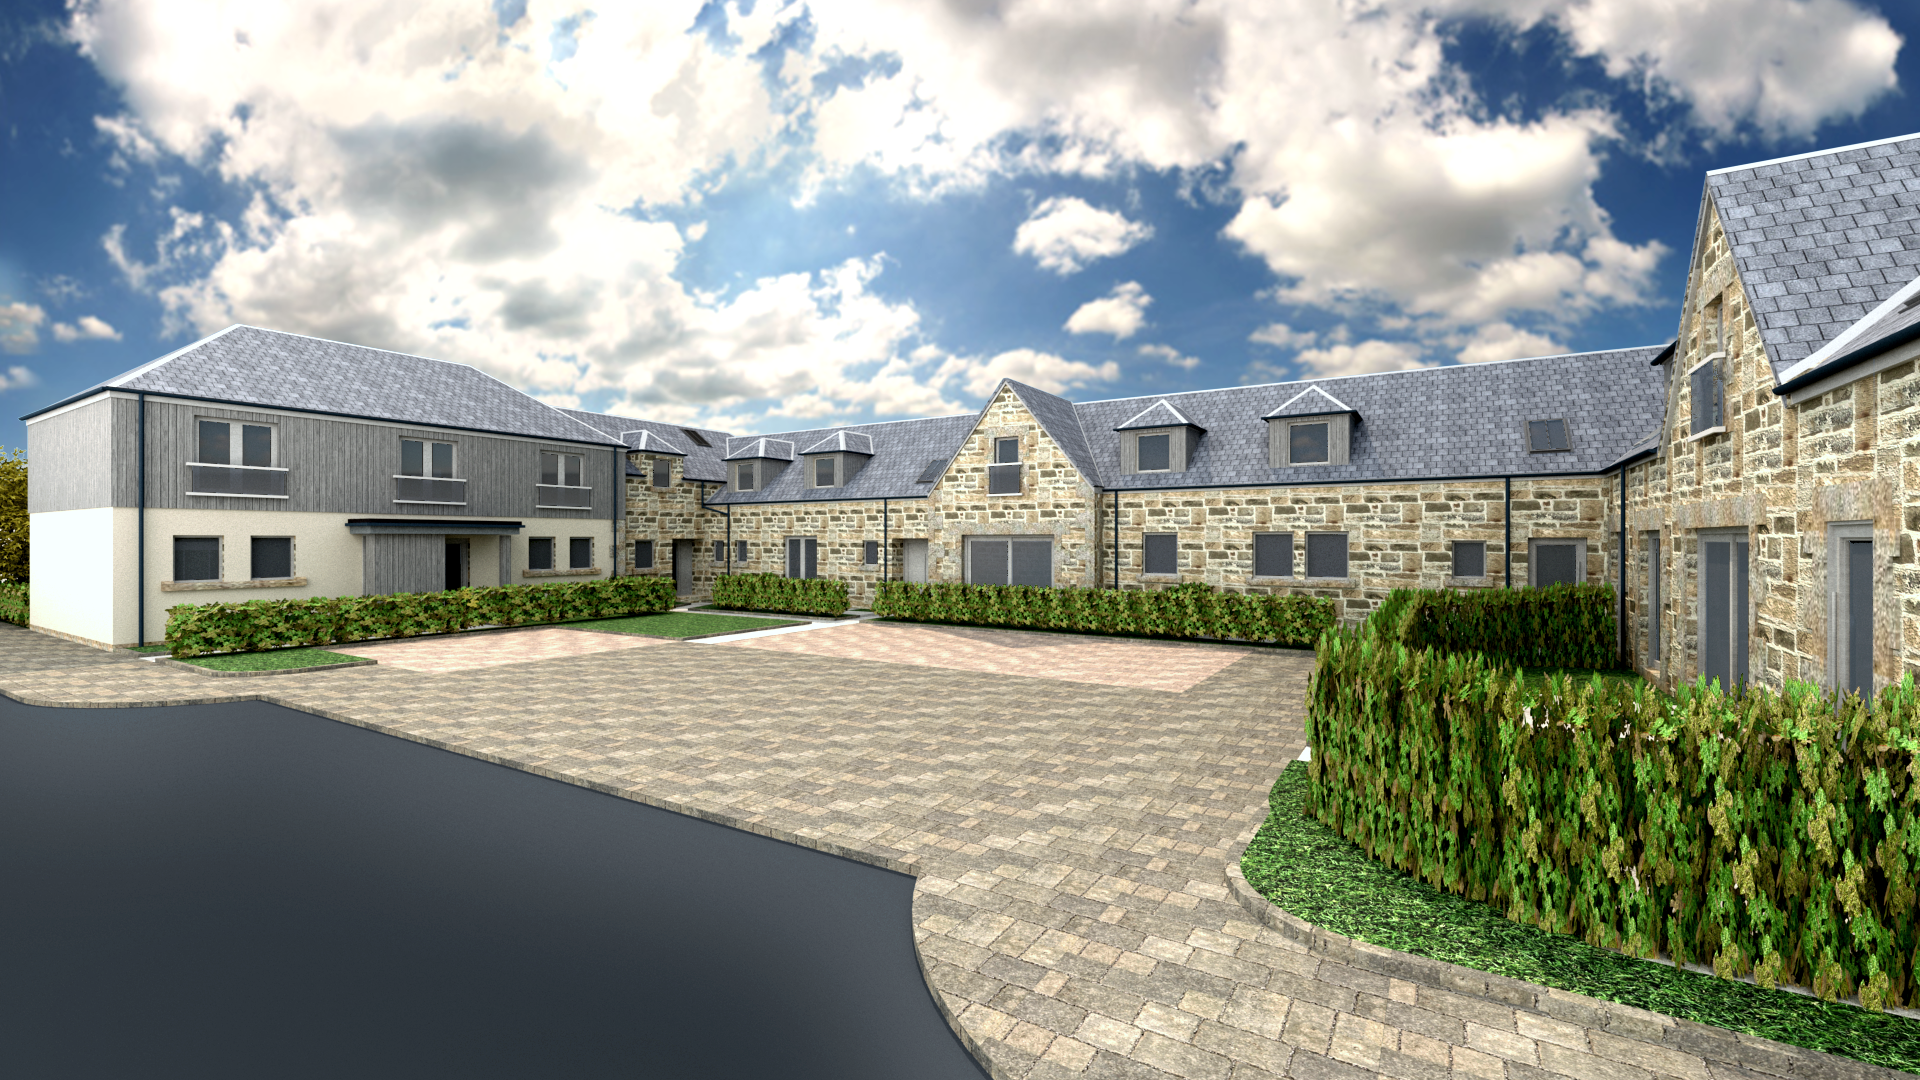 View of Phase 3 Courtyard. New build houses.